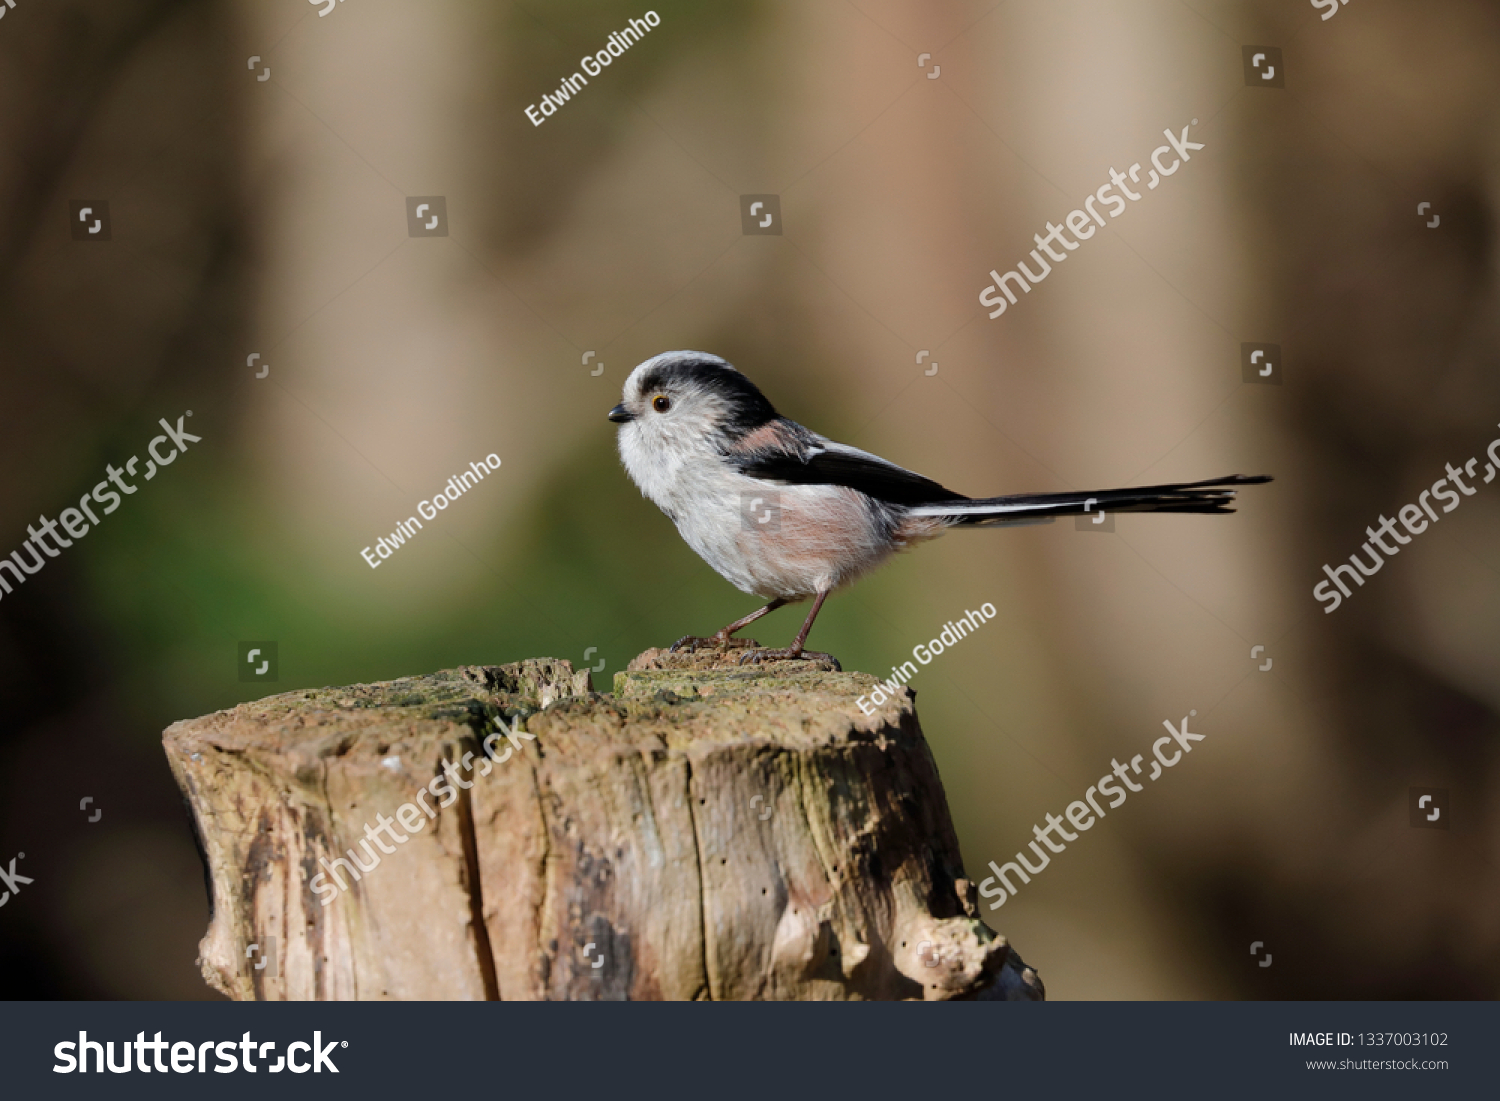 A long-tailed tit on a post #1337003102